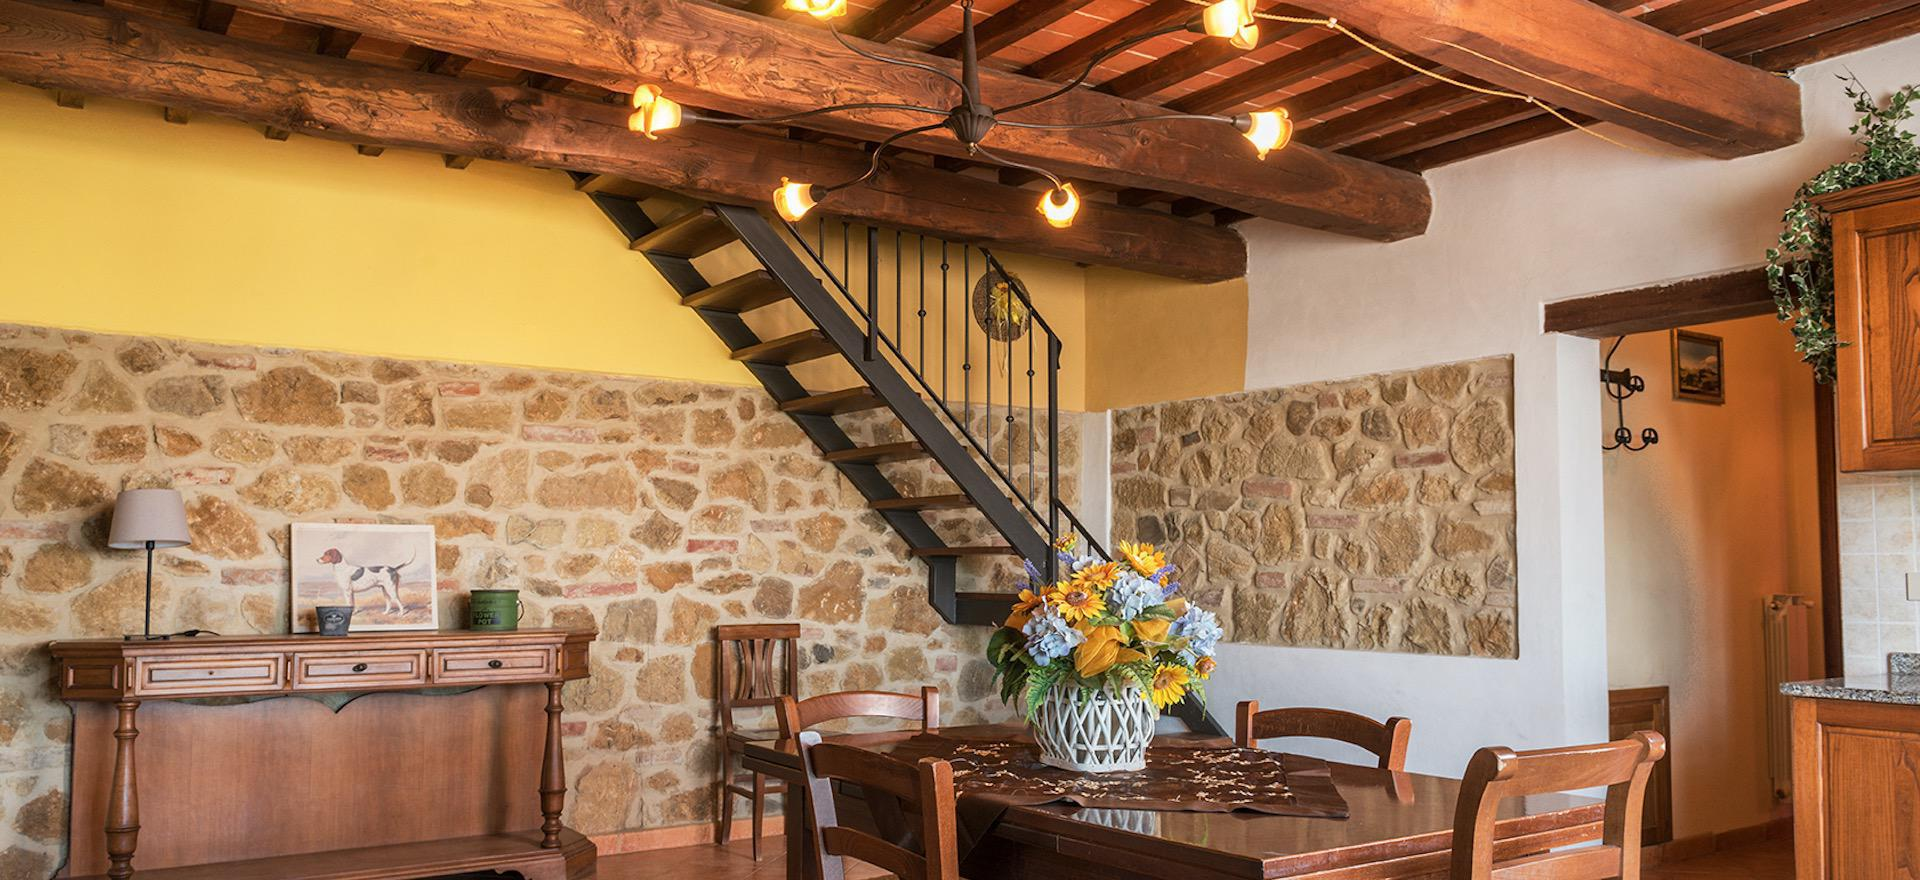 Agriturismo Tuscany Agriturismo Tuscany, kid friendly and super welcoming!